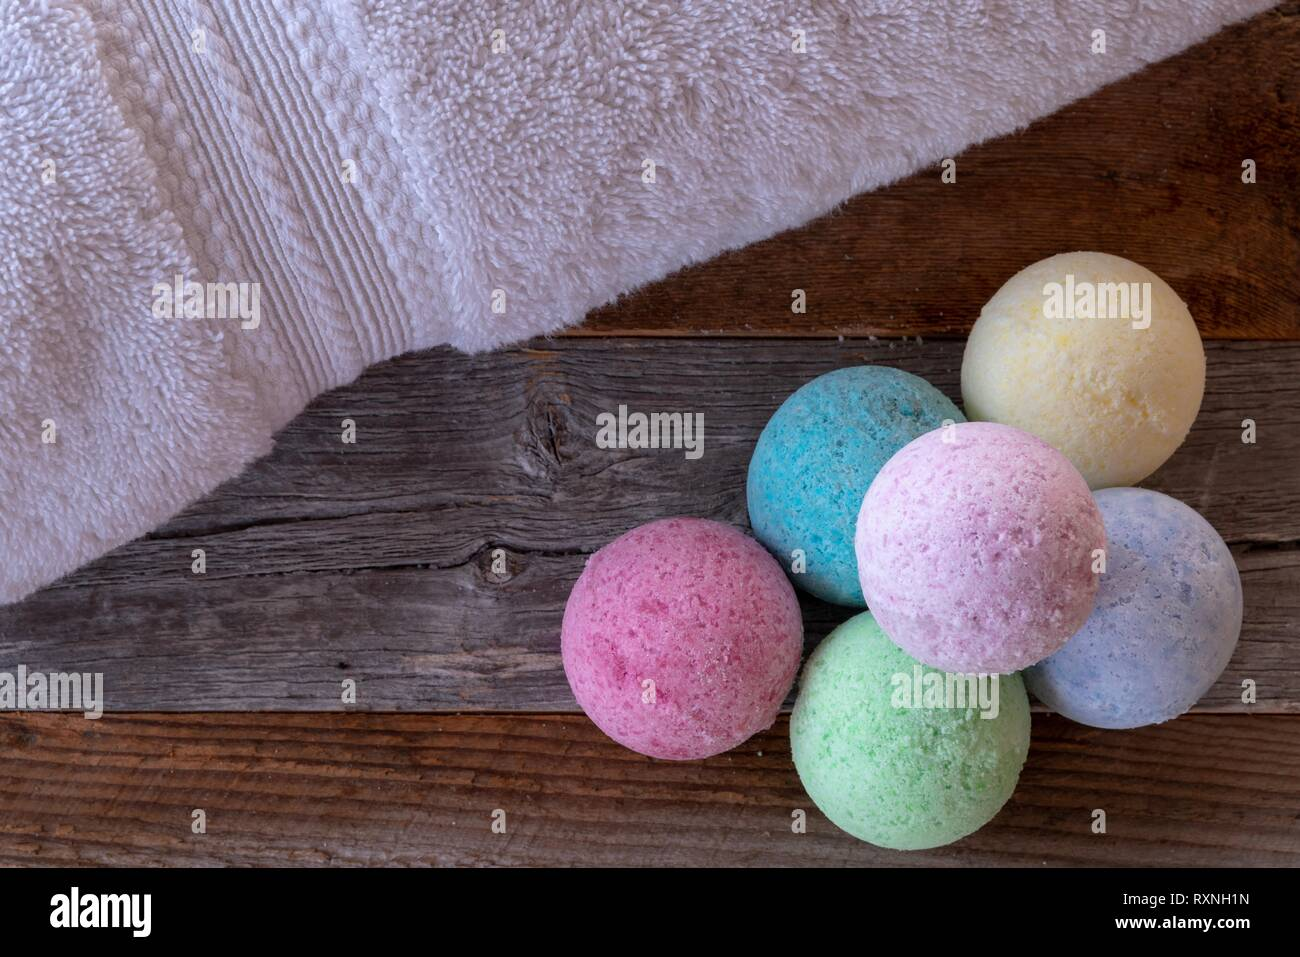 Colorful bath bombs with accessories on weathered wood. - Stock Image